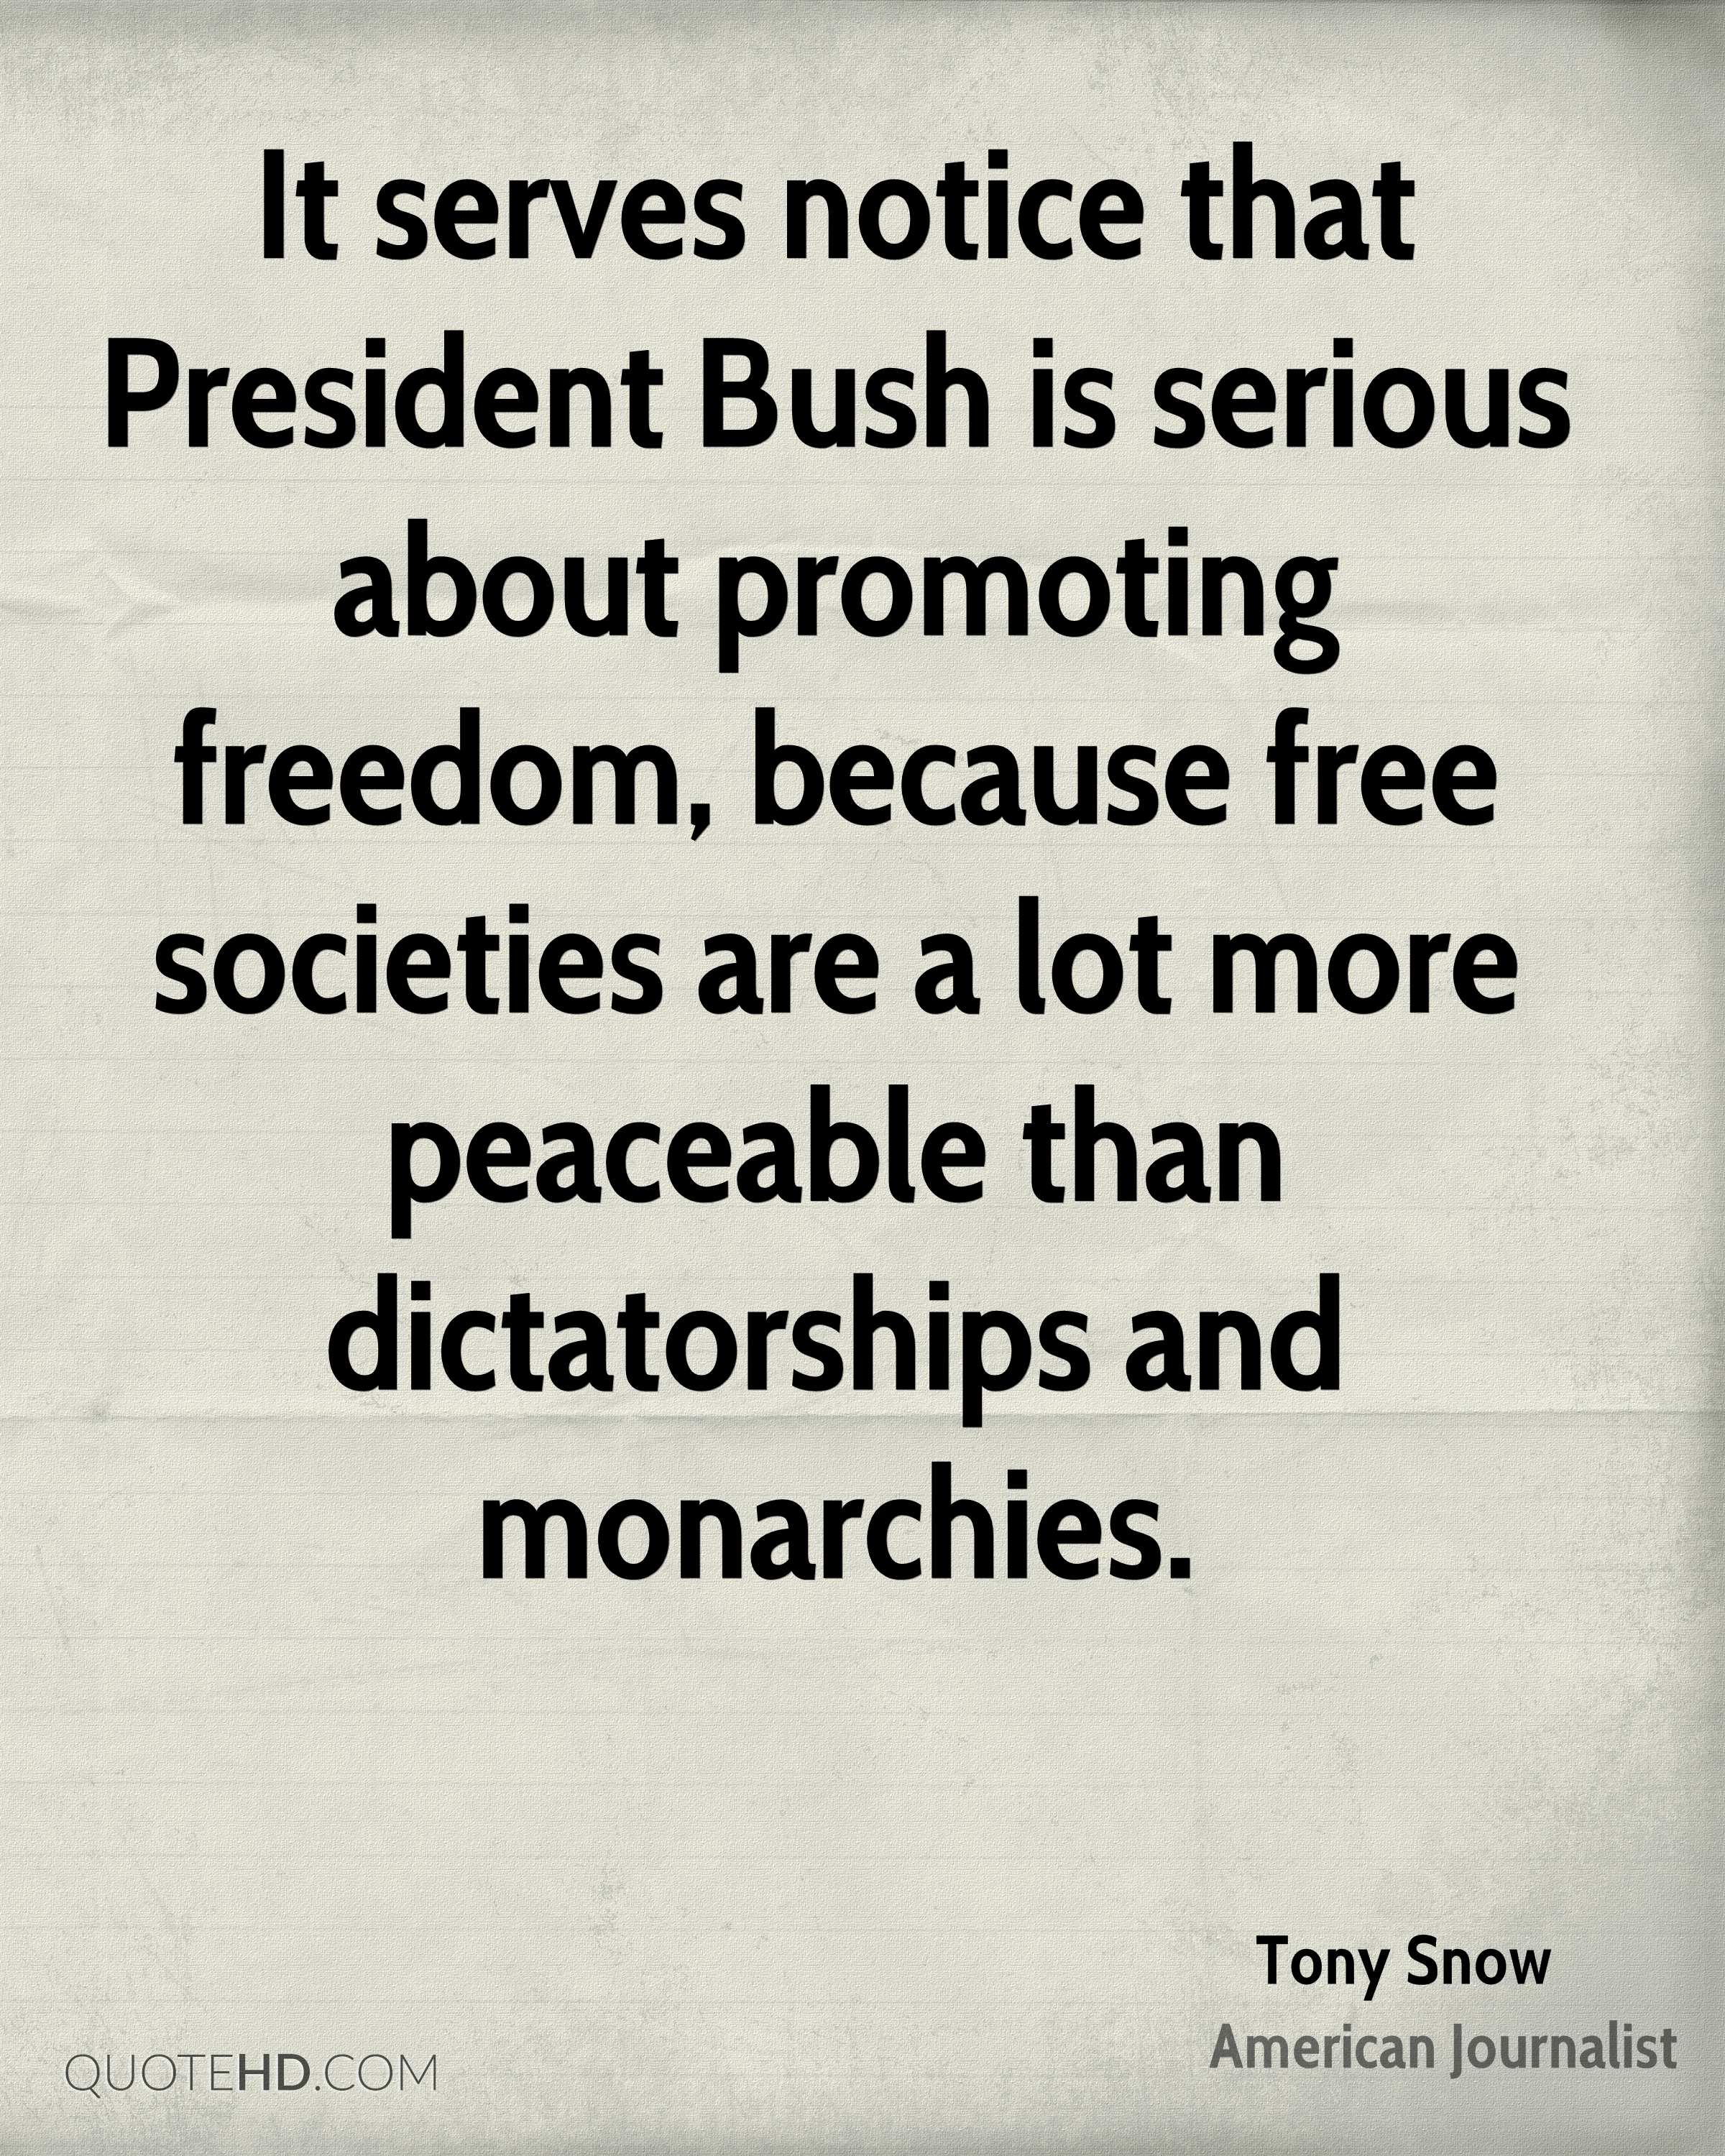 It serves notice that President Bush is serious about promoting freedom, because free societies are a lot more peaceable than dictatorships and monarchies.